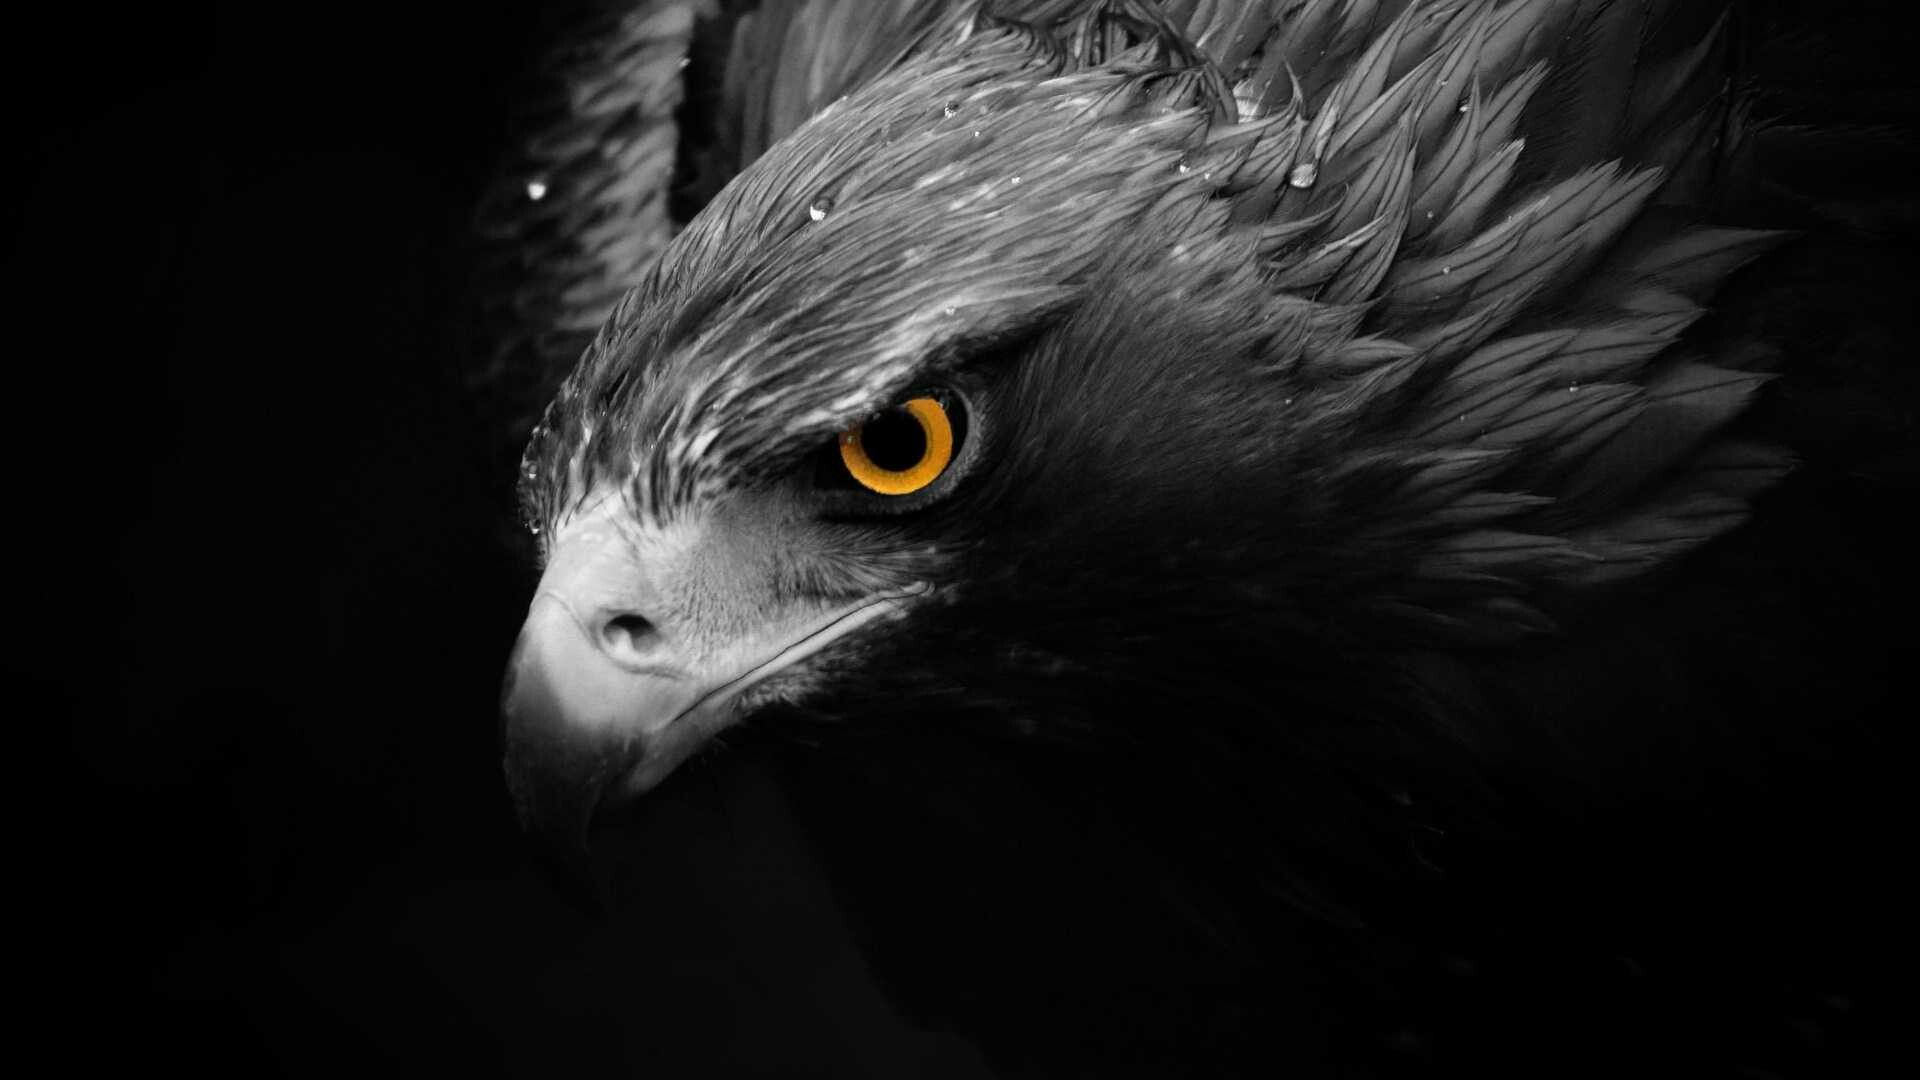 Black Eagle Hd Wallpapers Top Free Black Eagle Hd Backgrounds Wallpaperaccess